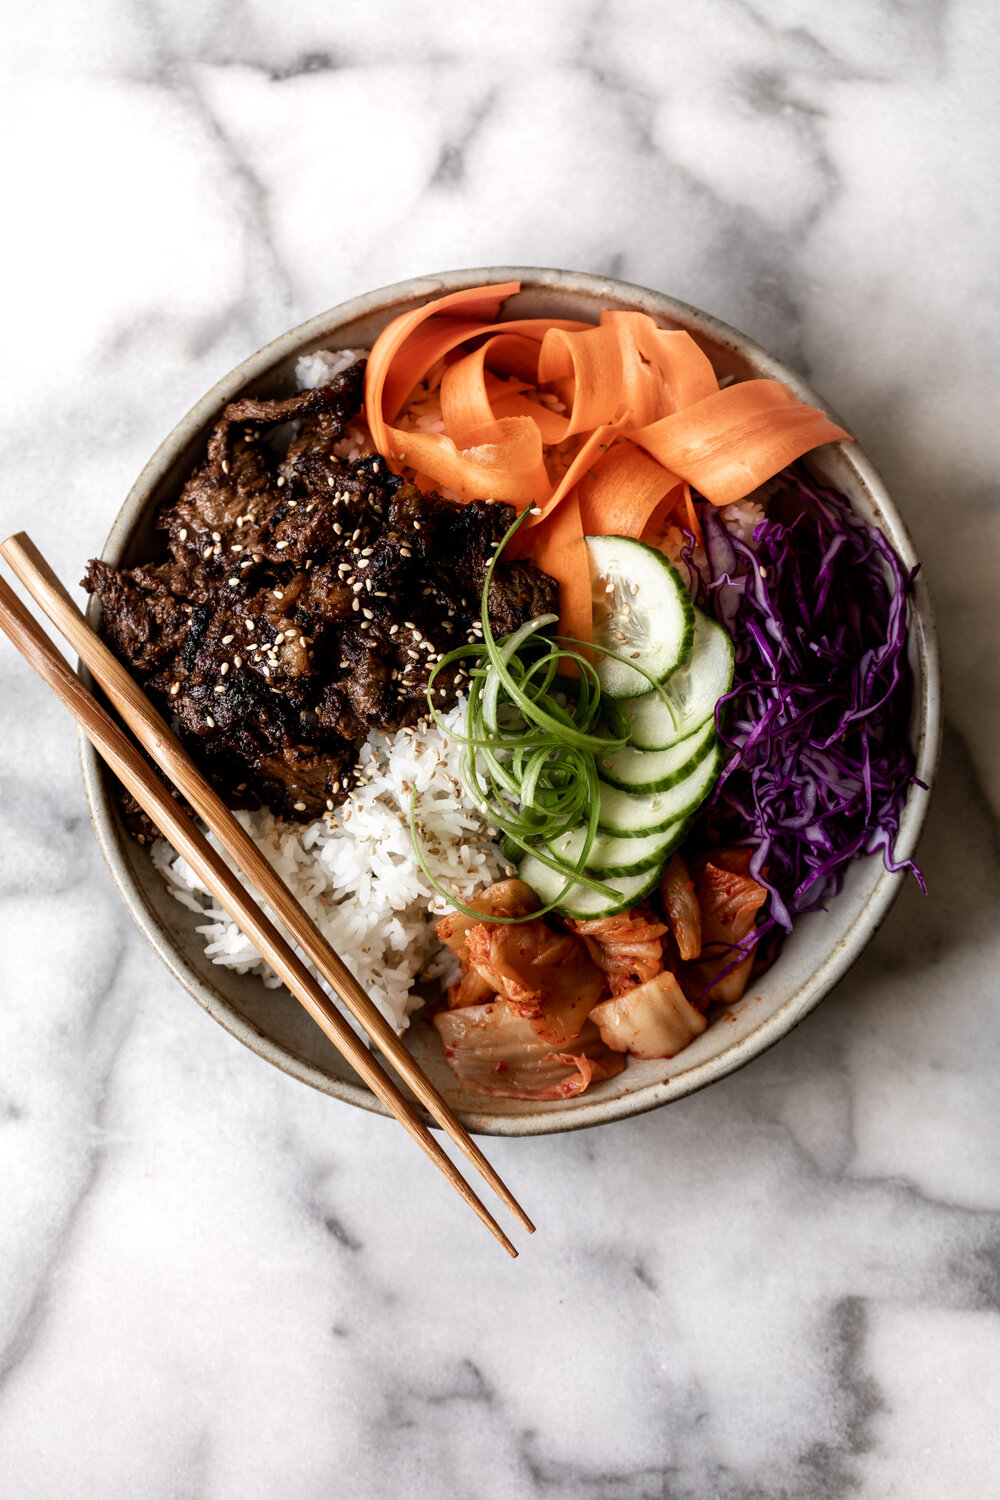 Bulgogi, Korean BBQ beef, is thinly sliced beef marinated in a soy-based sauce cooked until the sauce caramelizes and served over rice.